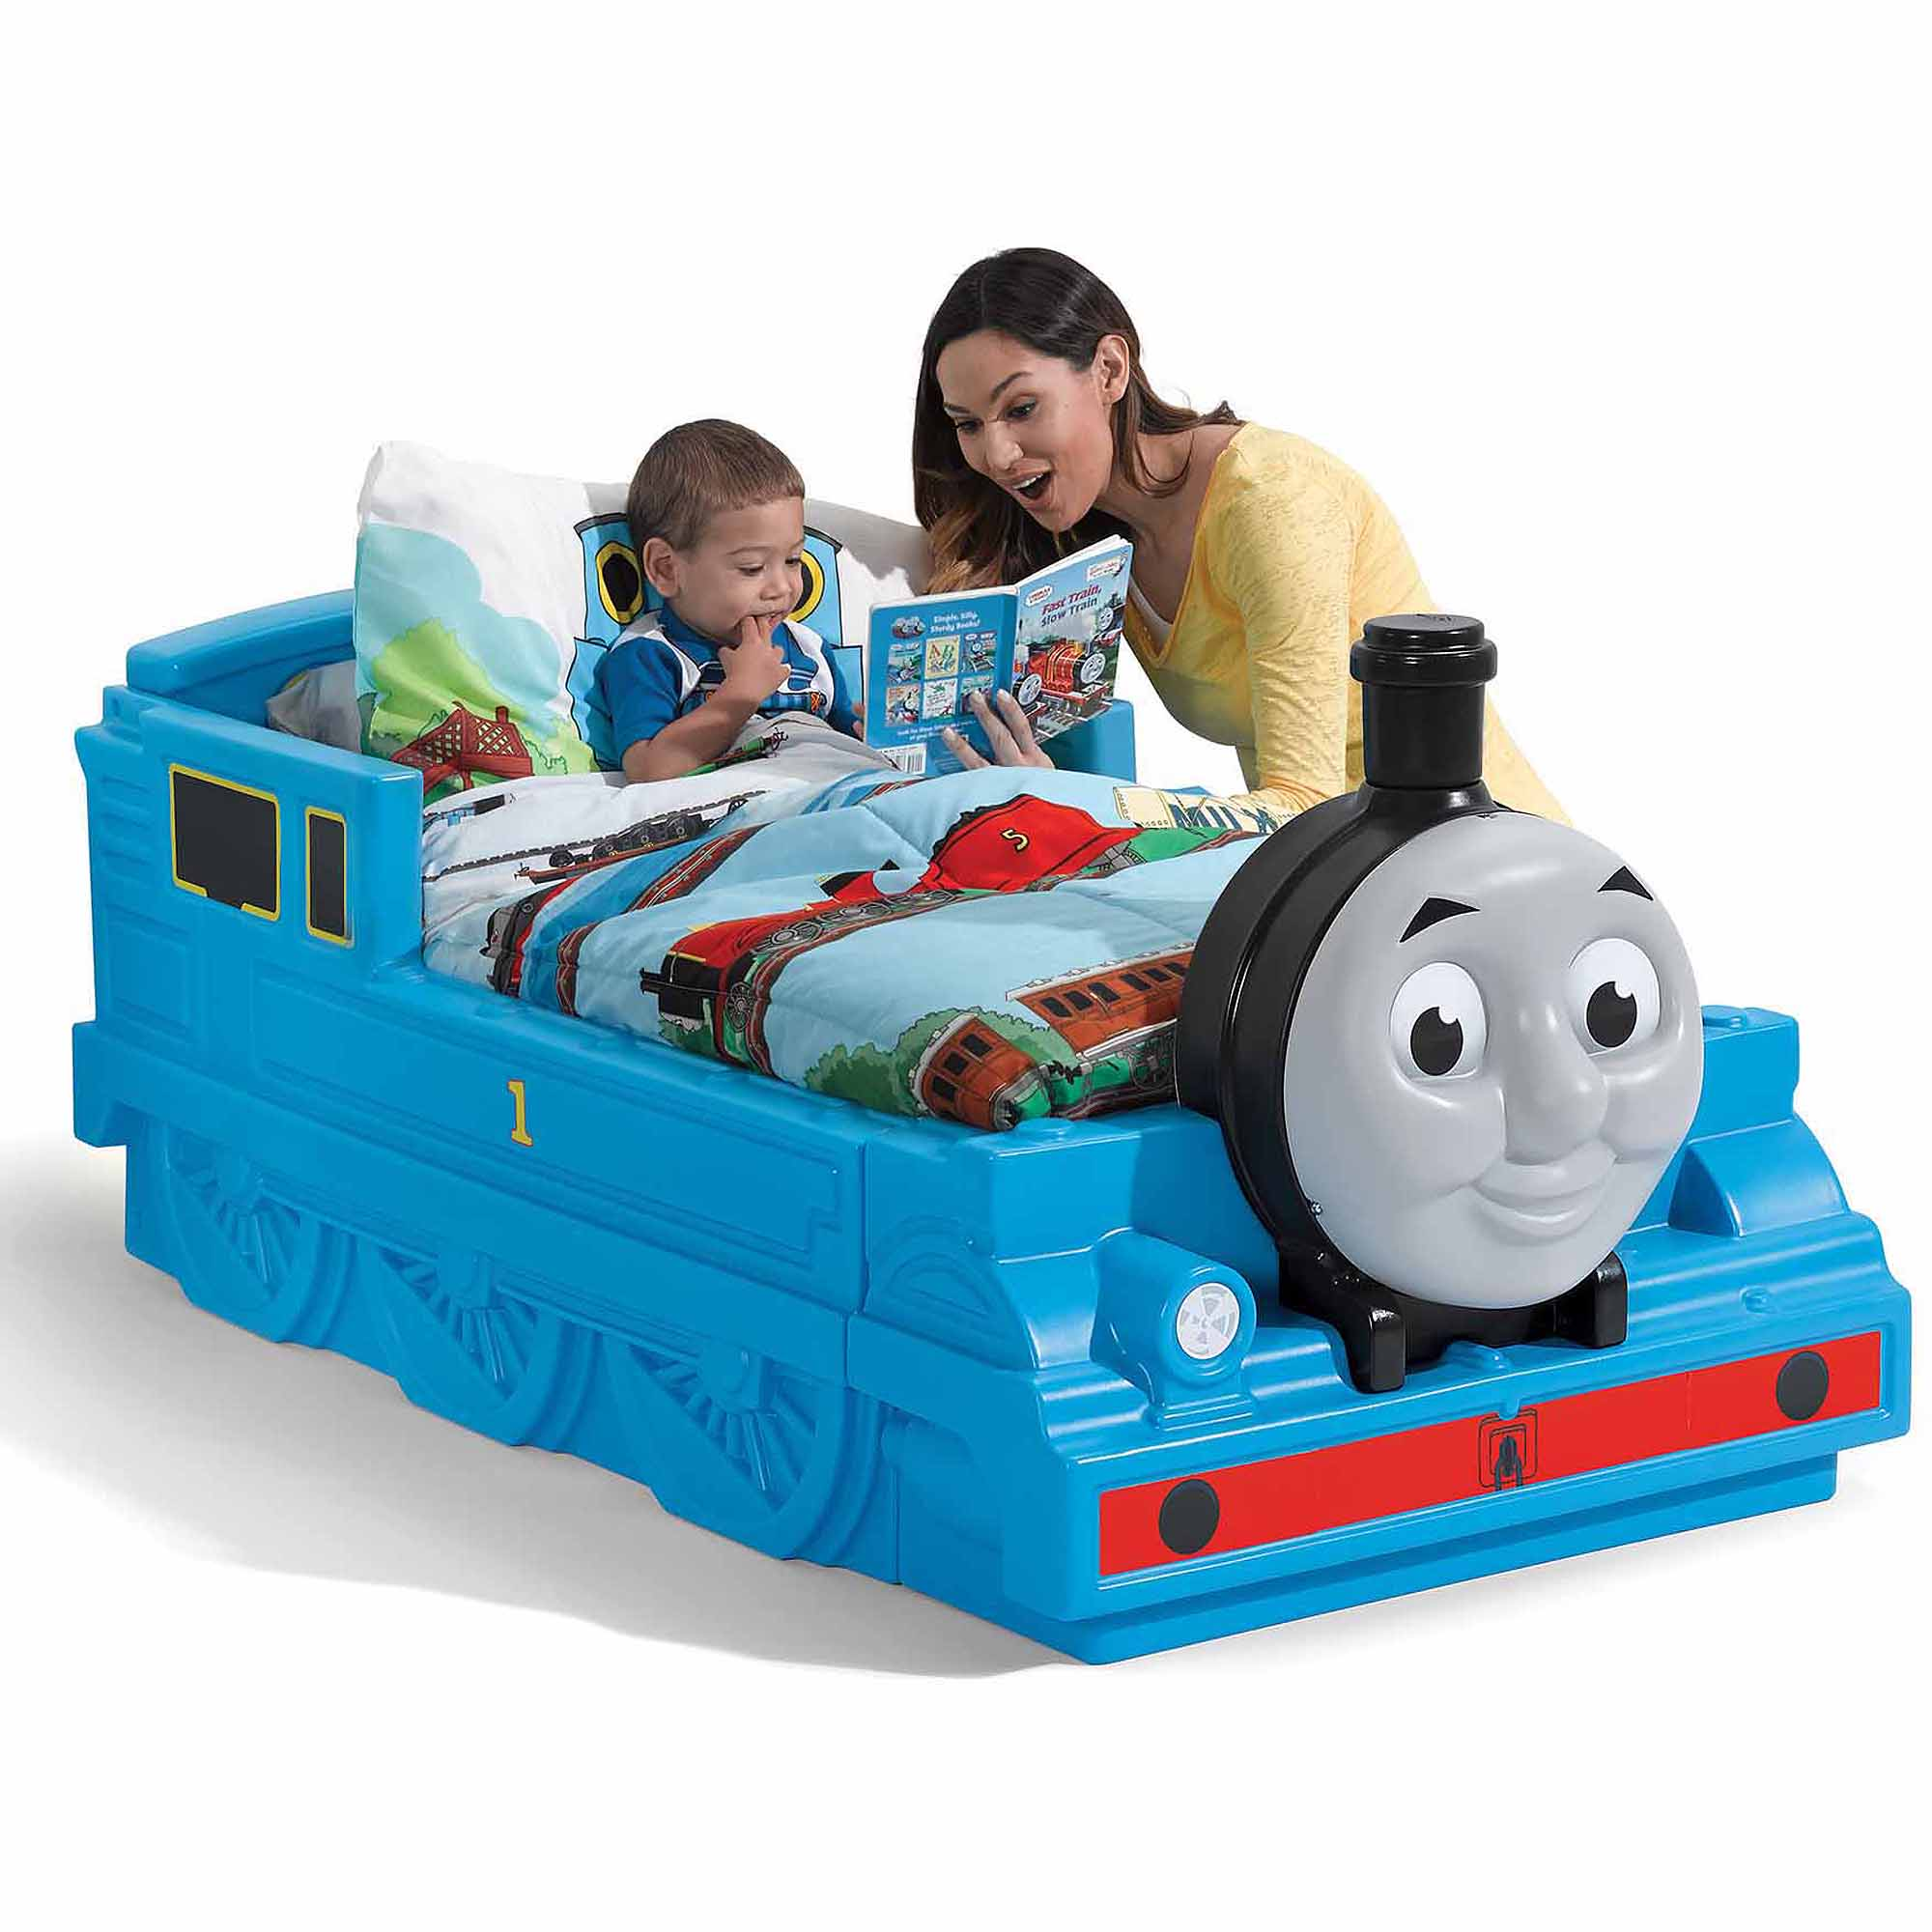 Thomas the Tank Engine Toddler Bed - Walmart.com